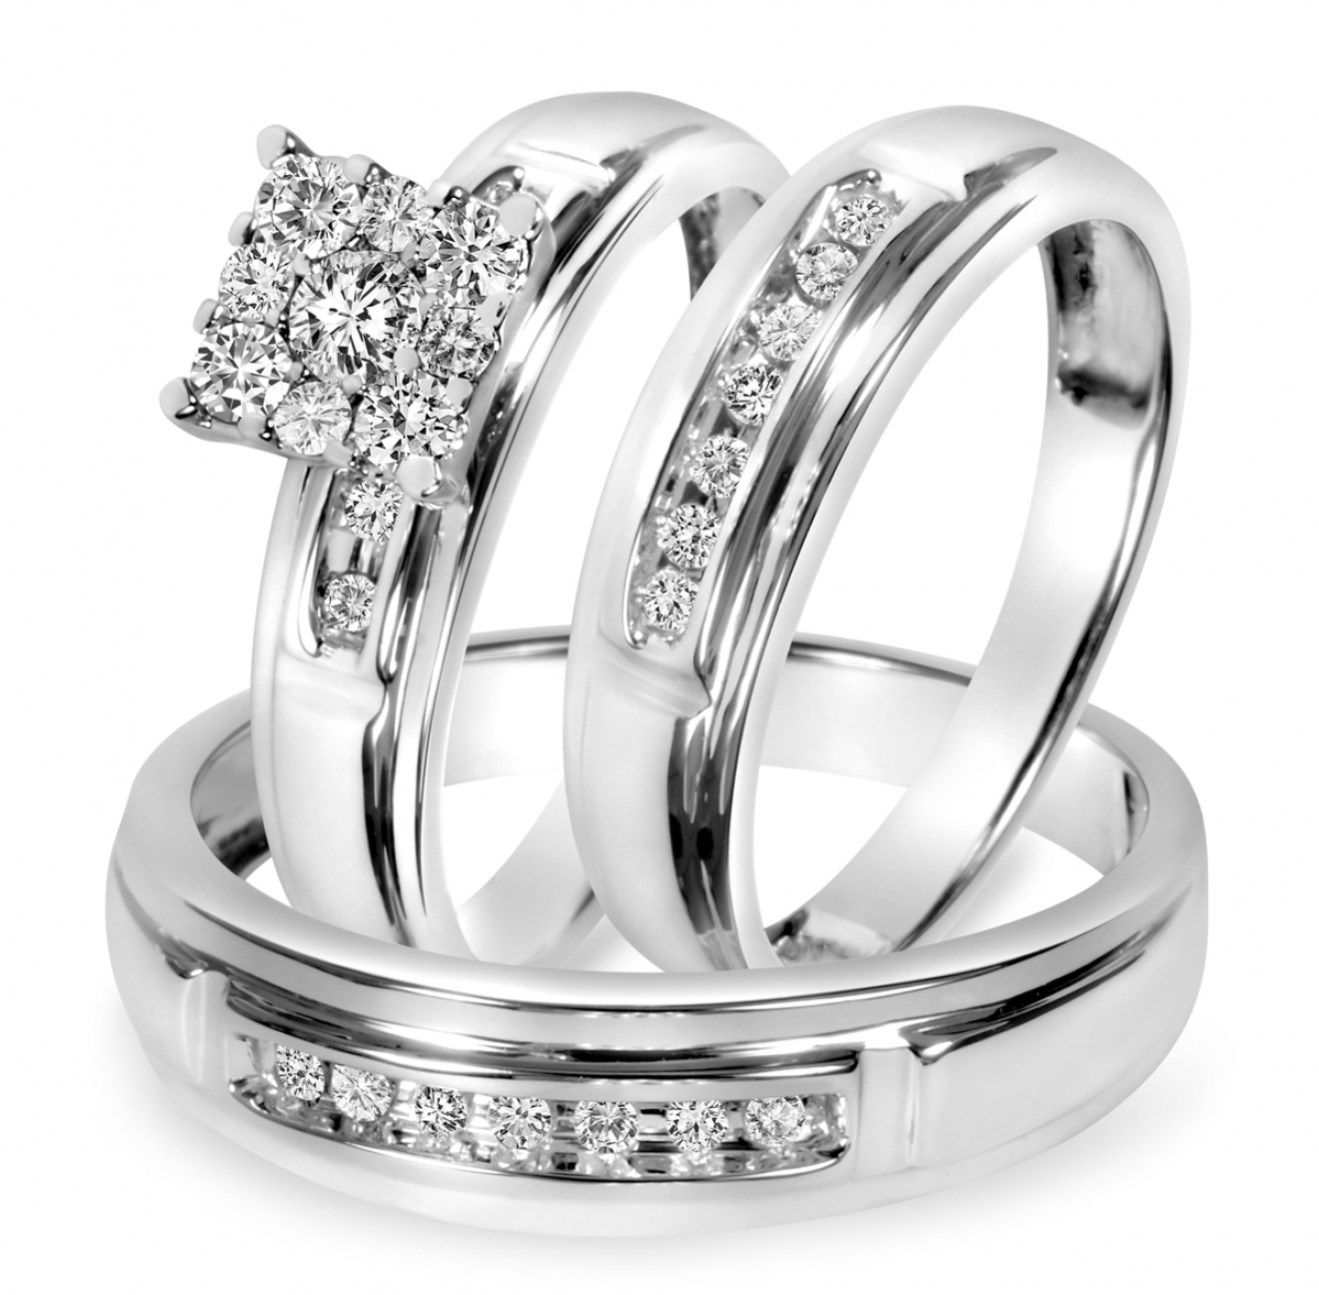 Wedding Rings Trio Wedding Ring Sets Jared Walmart Wedding Ring Pertaining To Cheap Wedding Ring Sets White Gold Best Inspiration Wedding Ring Trio Sets Wedding Ring Trio White Gold Wedding